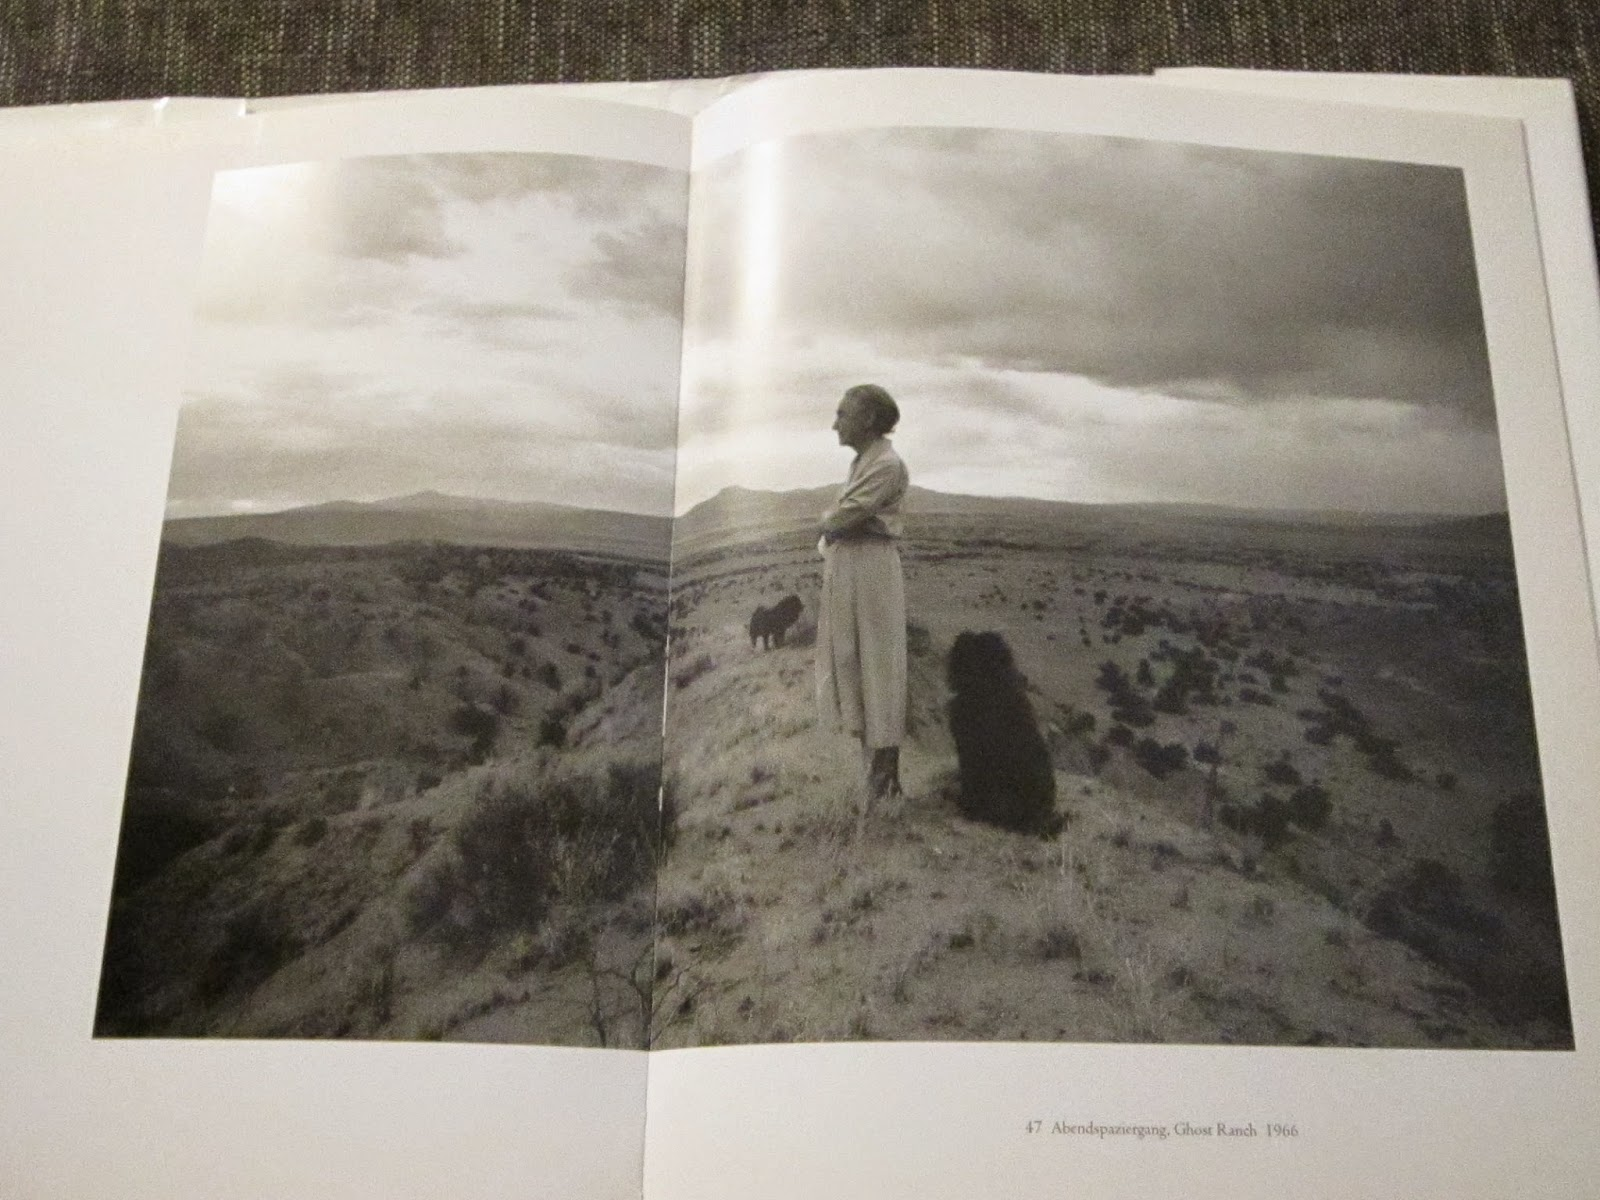 john loengard photo essays Buy life classic photographs: a personal interpretation revised, subsequent by john loengard (isbn: 9780821222638) from amazon's book store everyday low prices and.